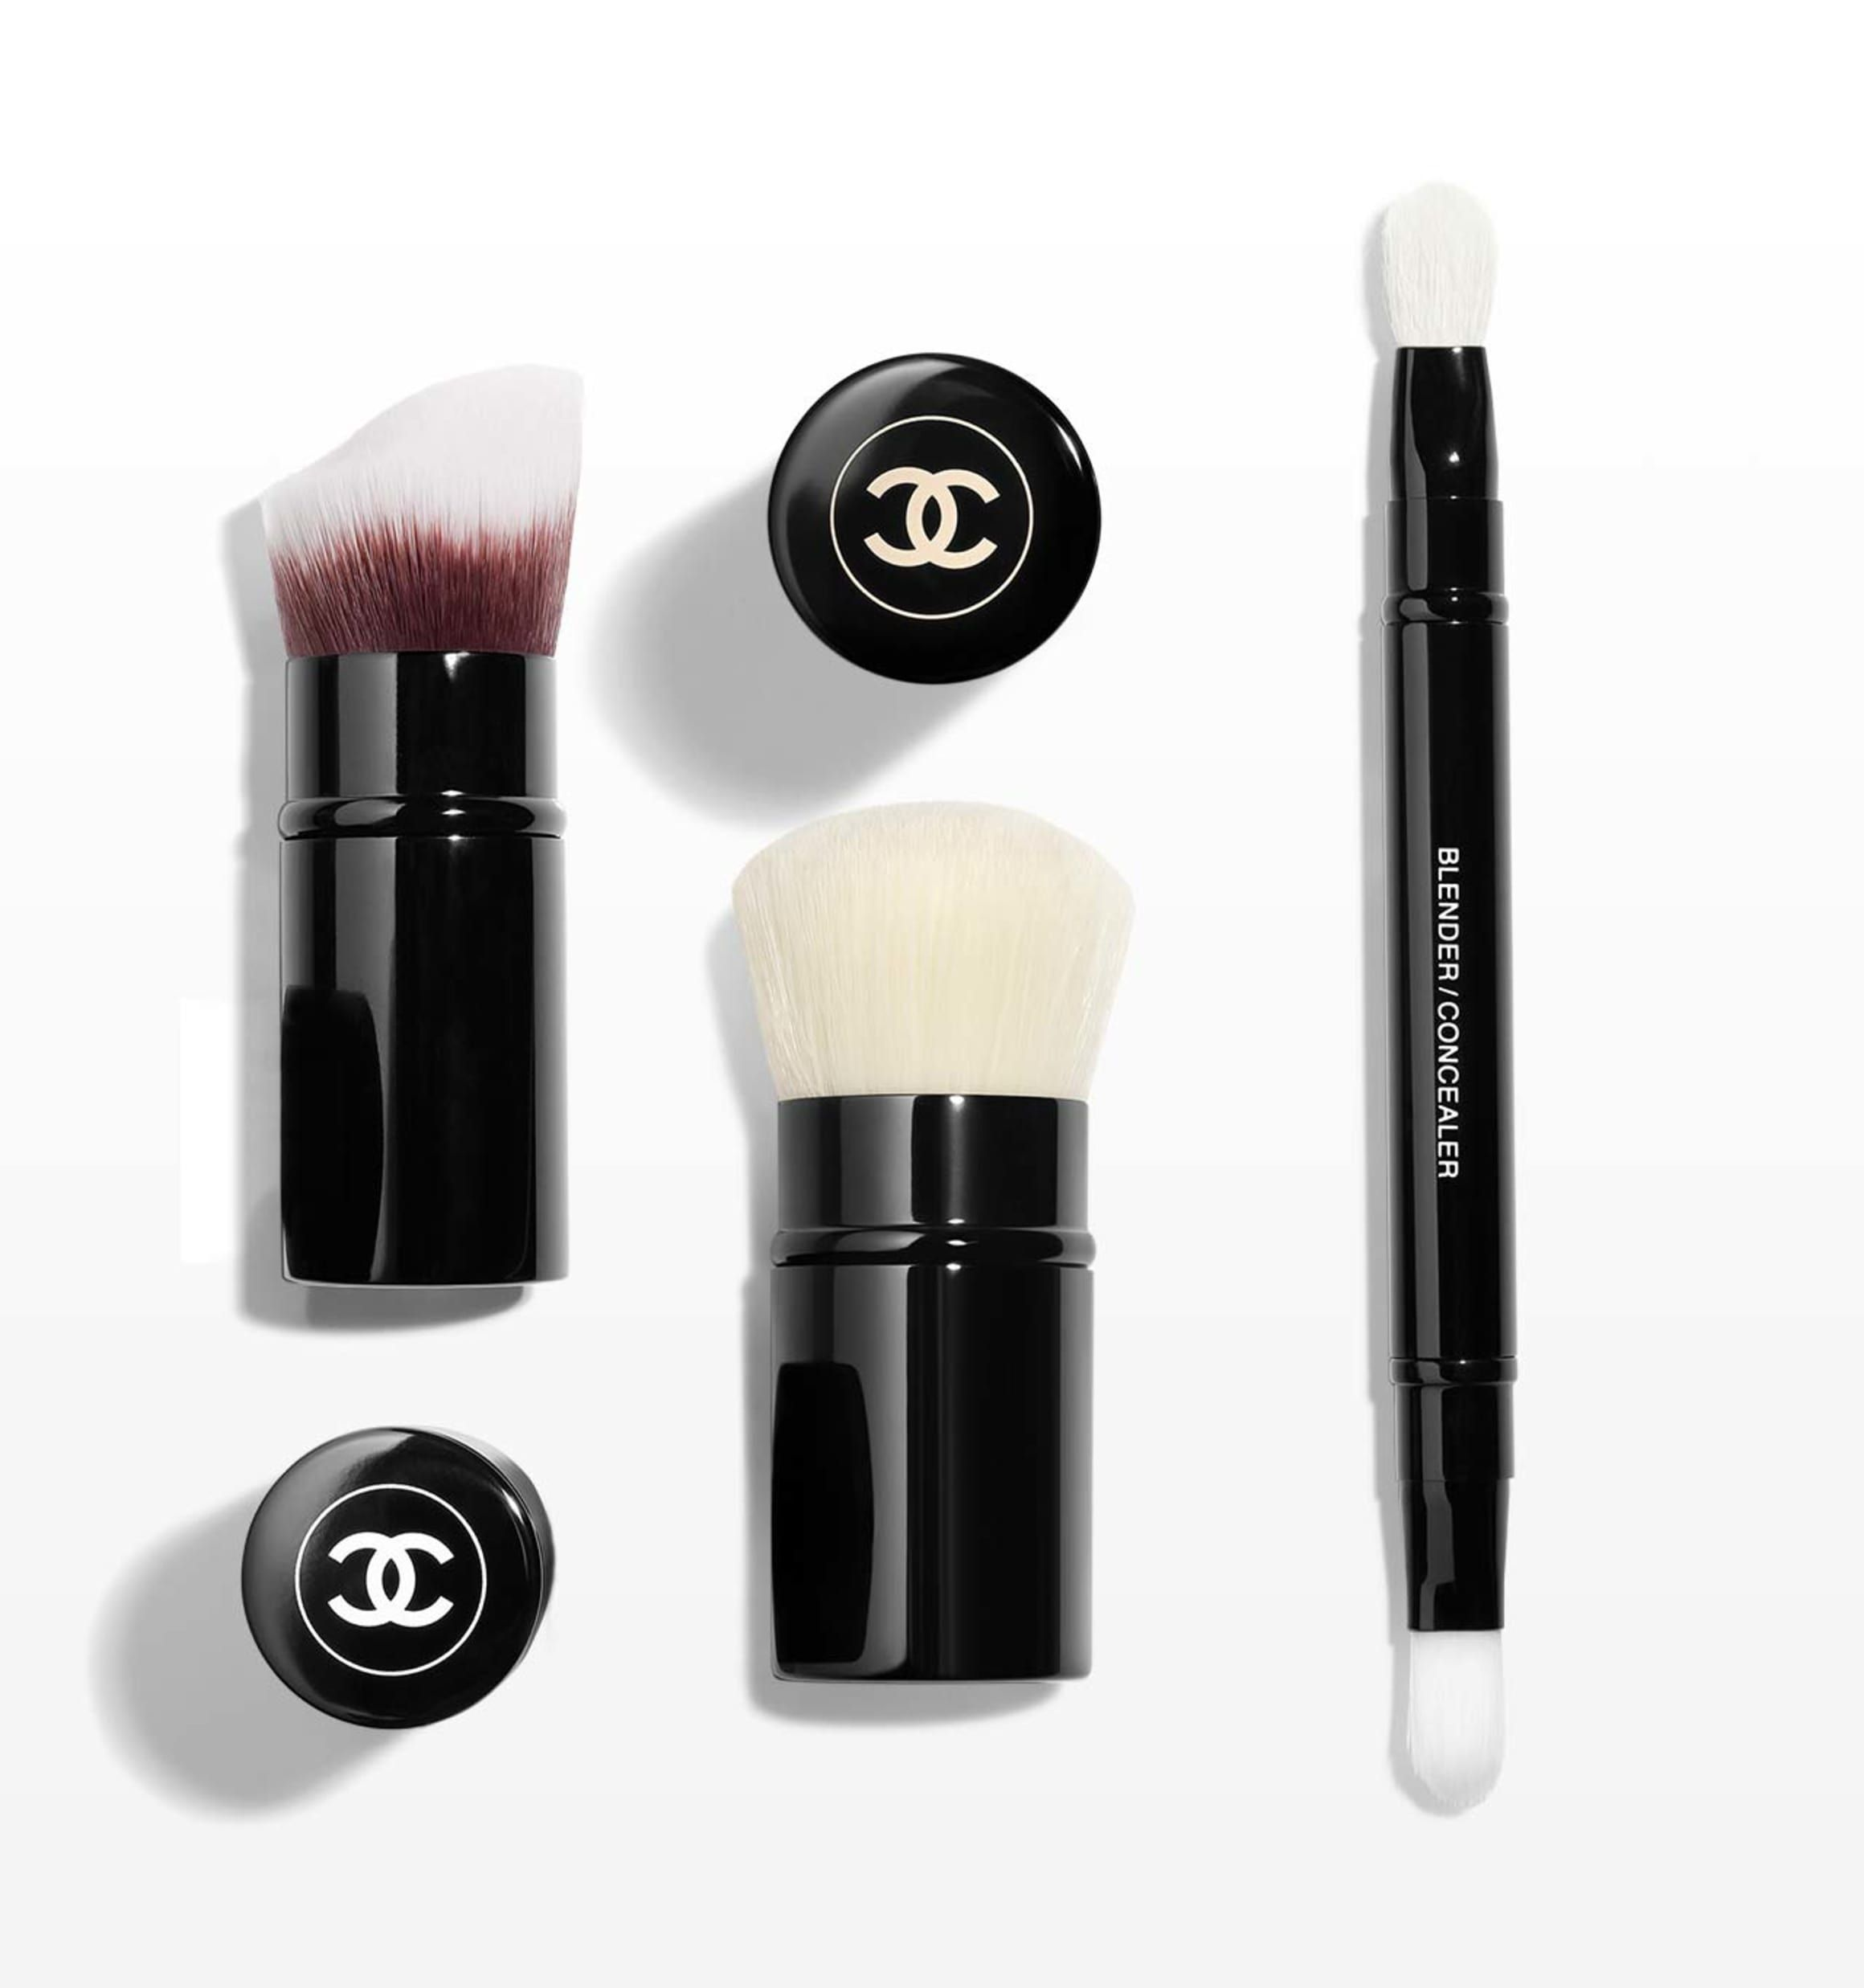 Brushes and Tools Face CHANEL Chanel makeup, Chanel